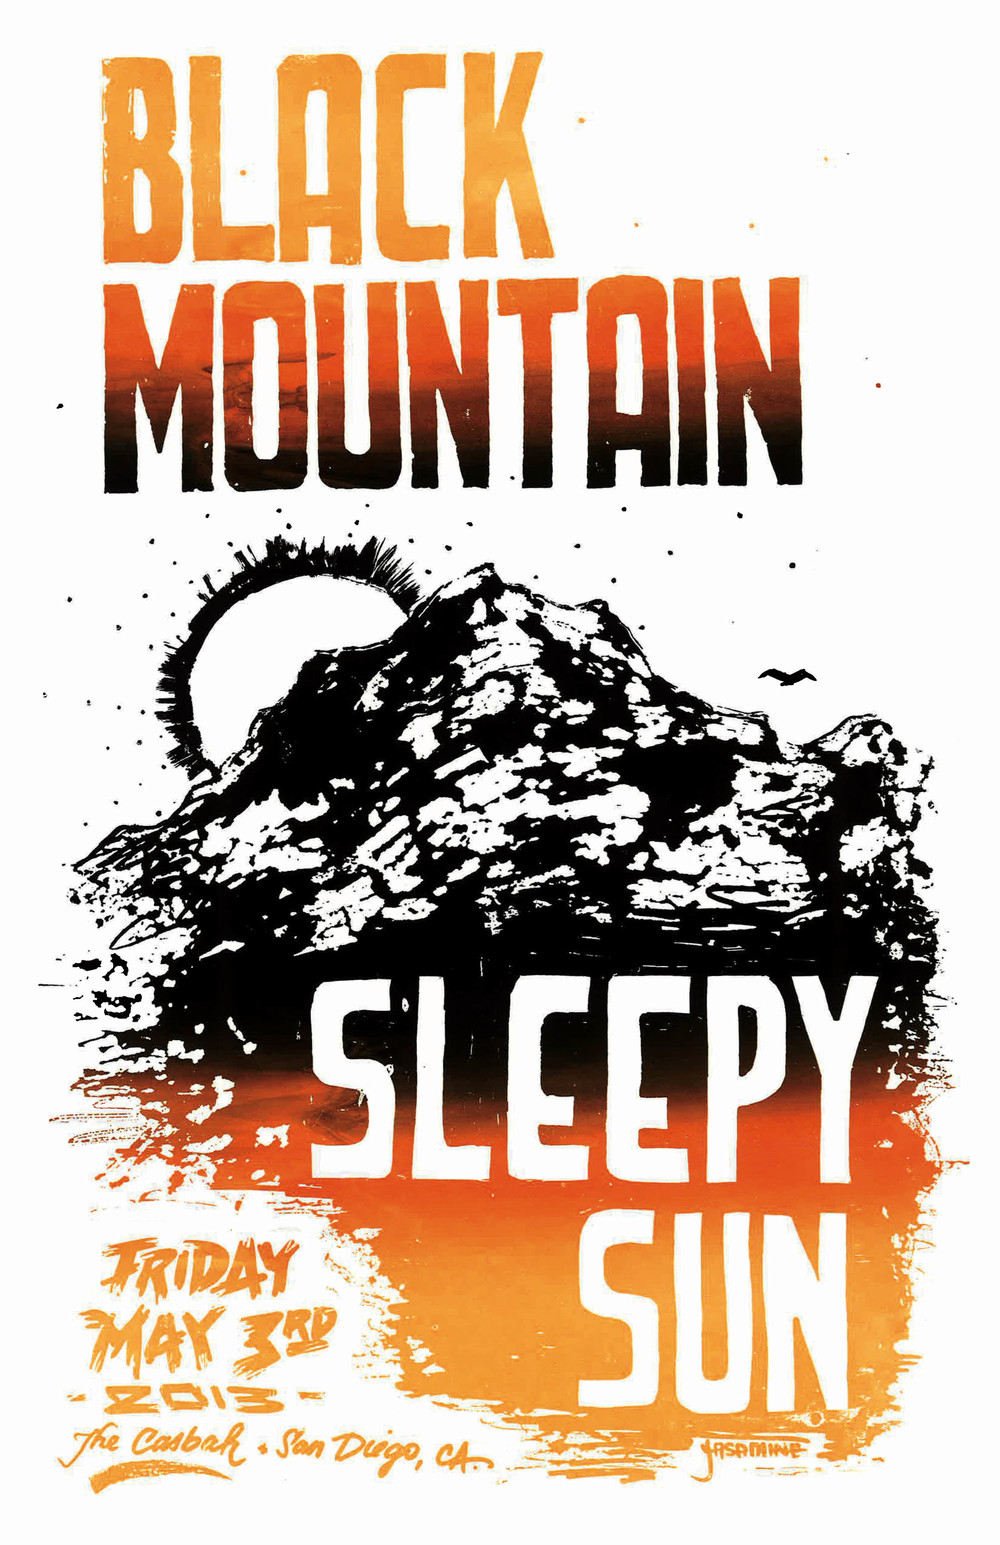 Concert Poster for Black Mountain